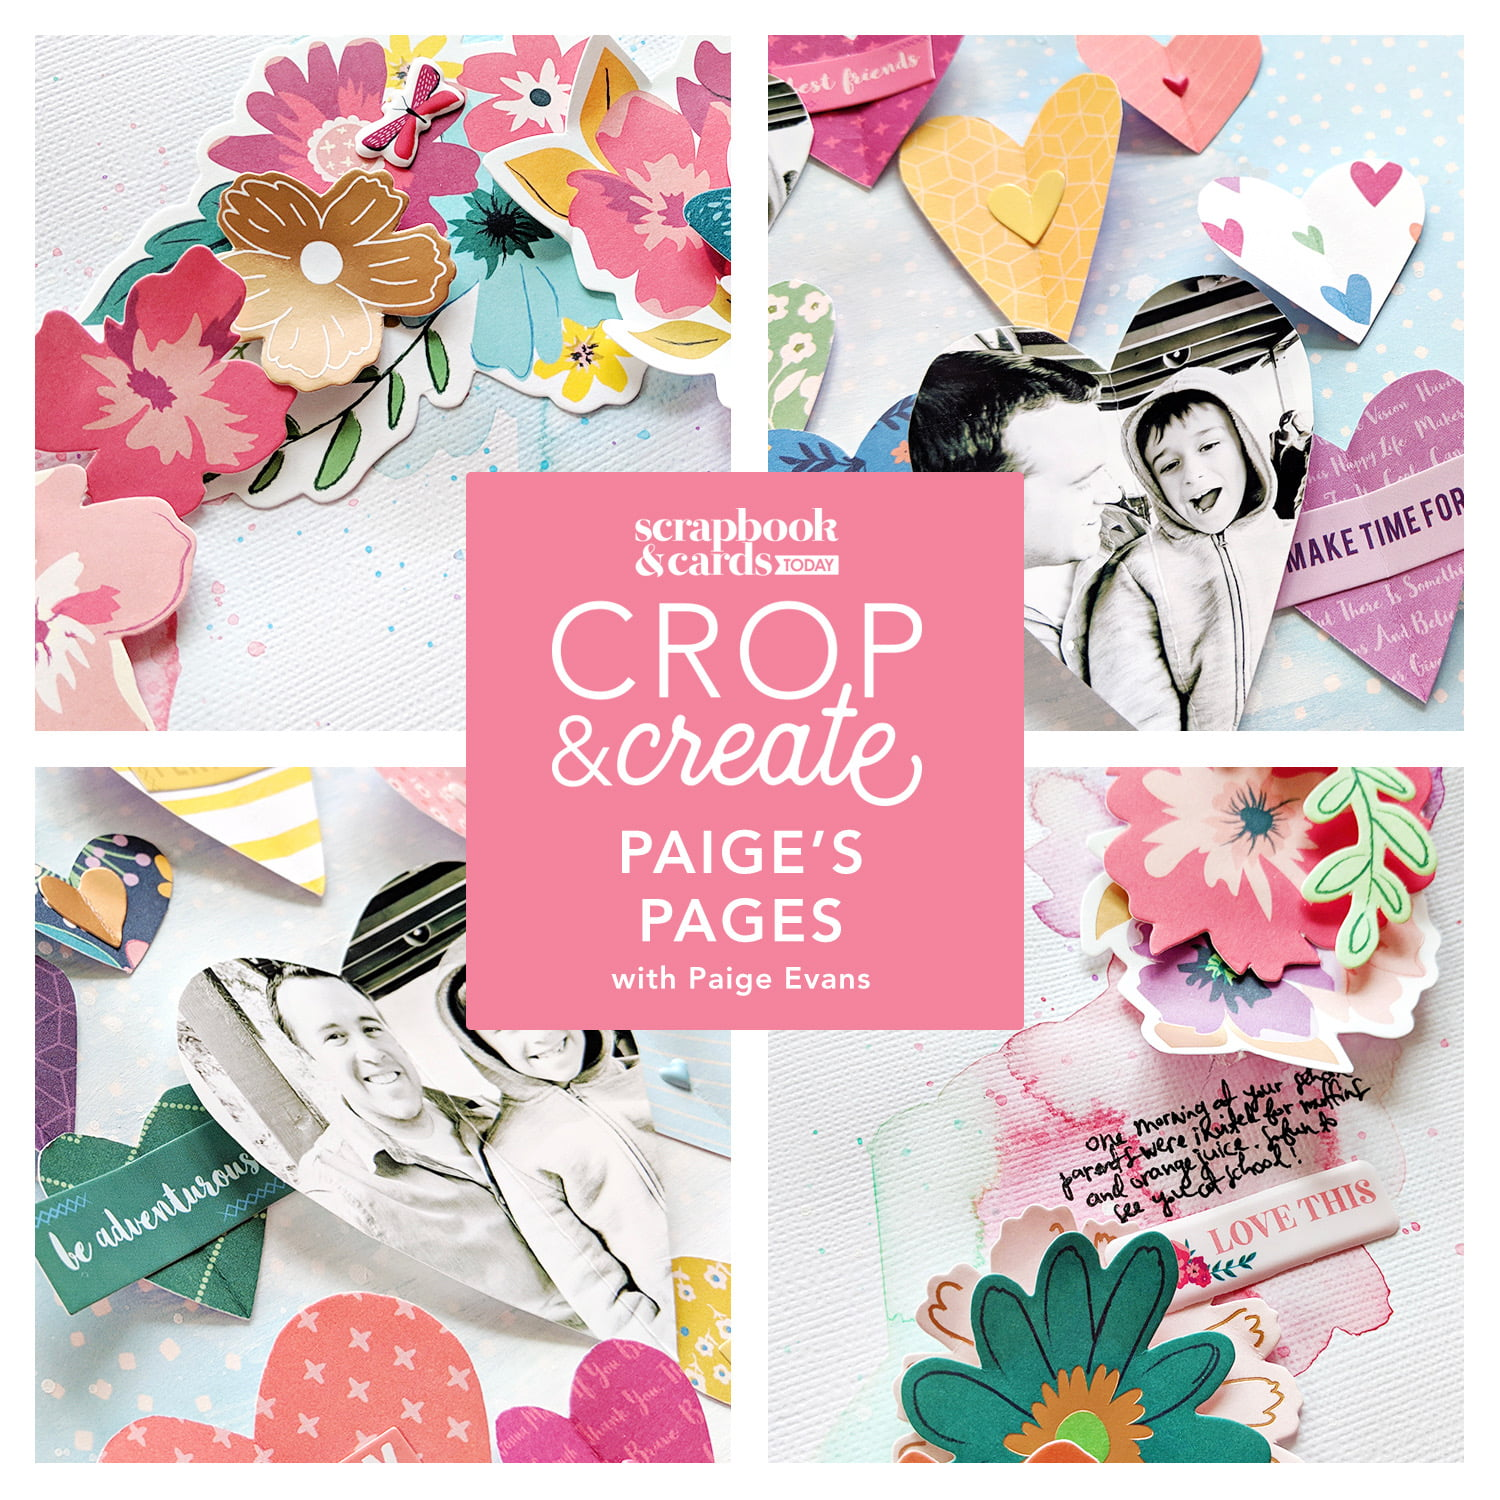 Crop & Create - Paige's Pages with Paige Evans